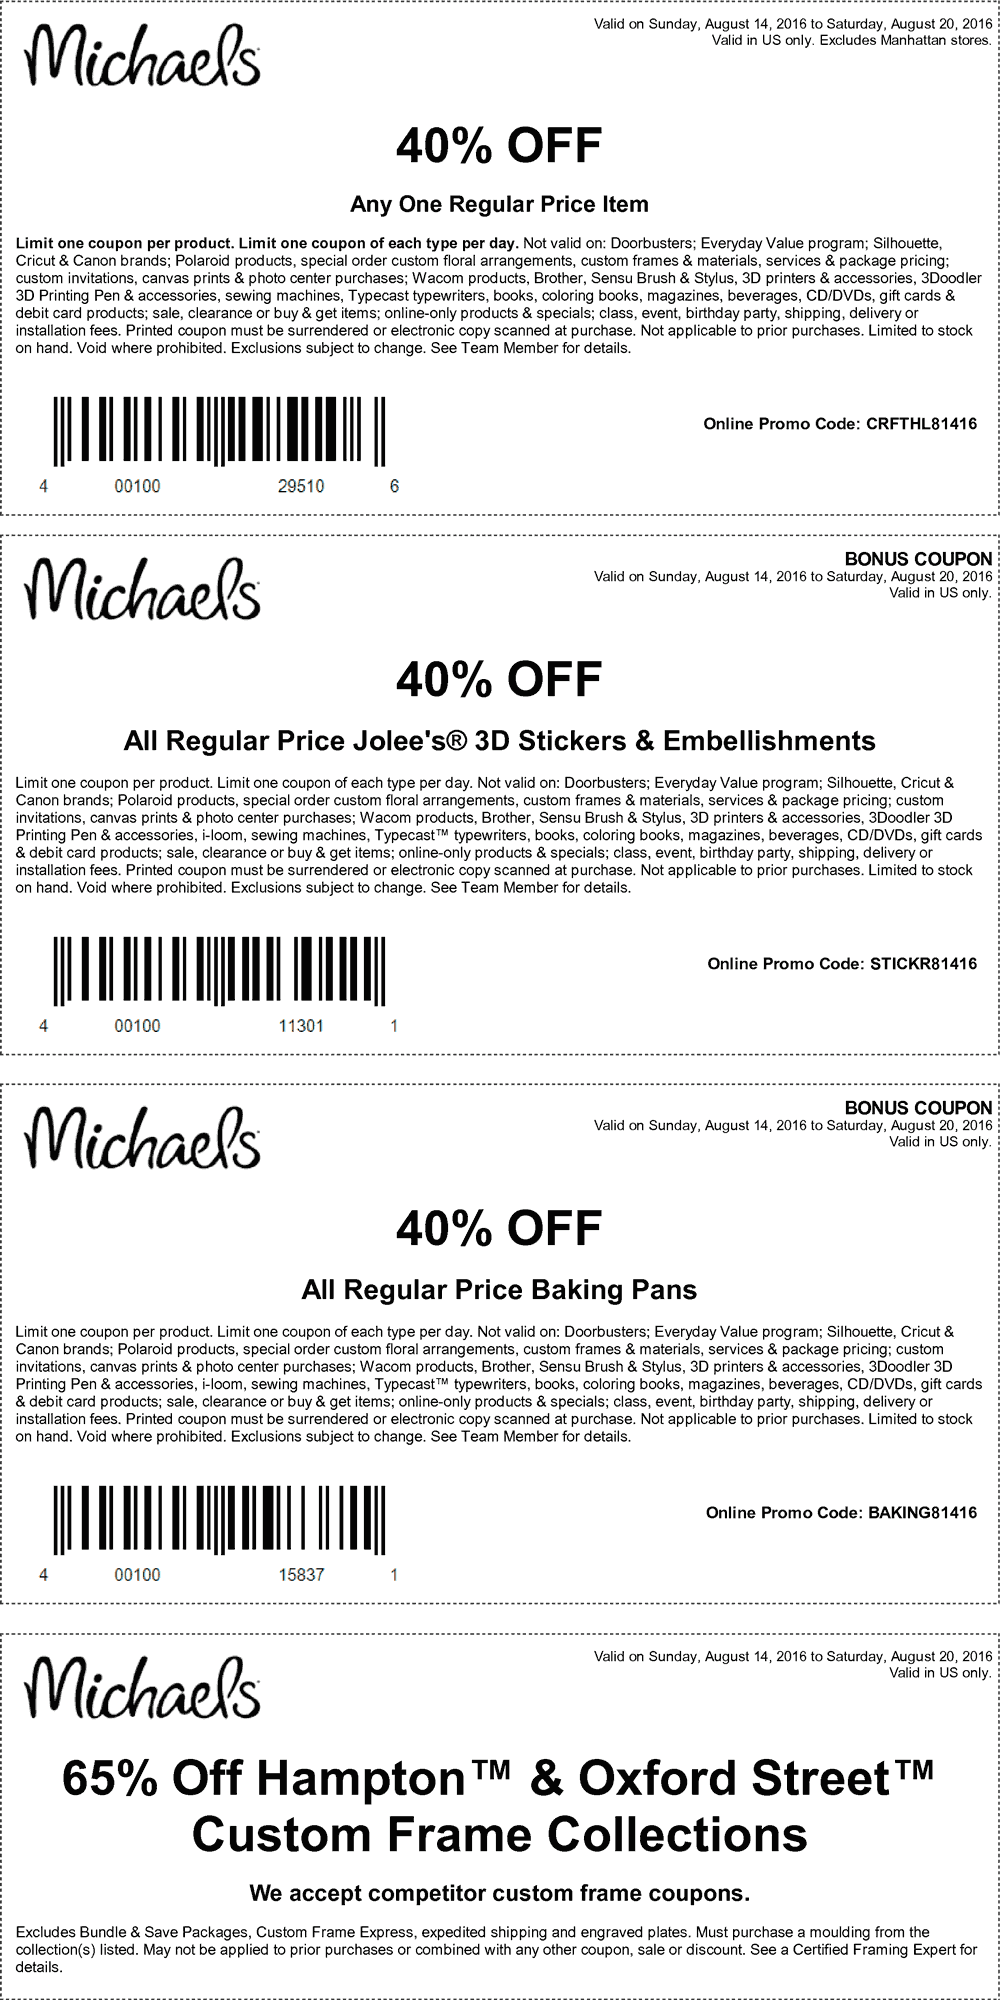 Michaels Coupon May 2018 40% off a single item at Michaels, or online via promo code CRFTHL81416